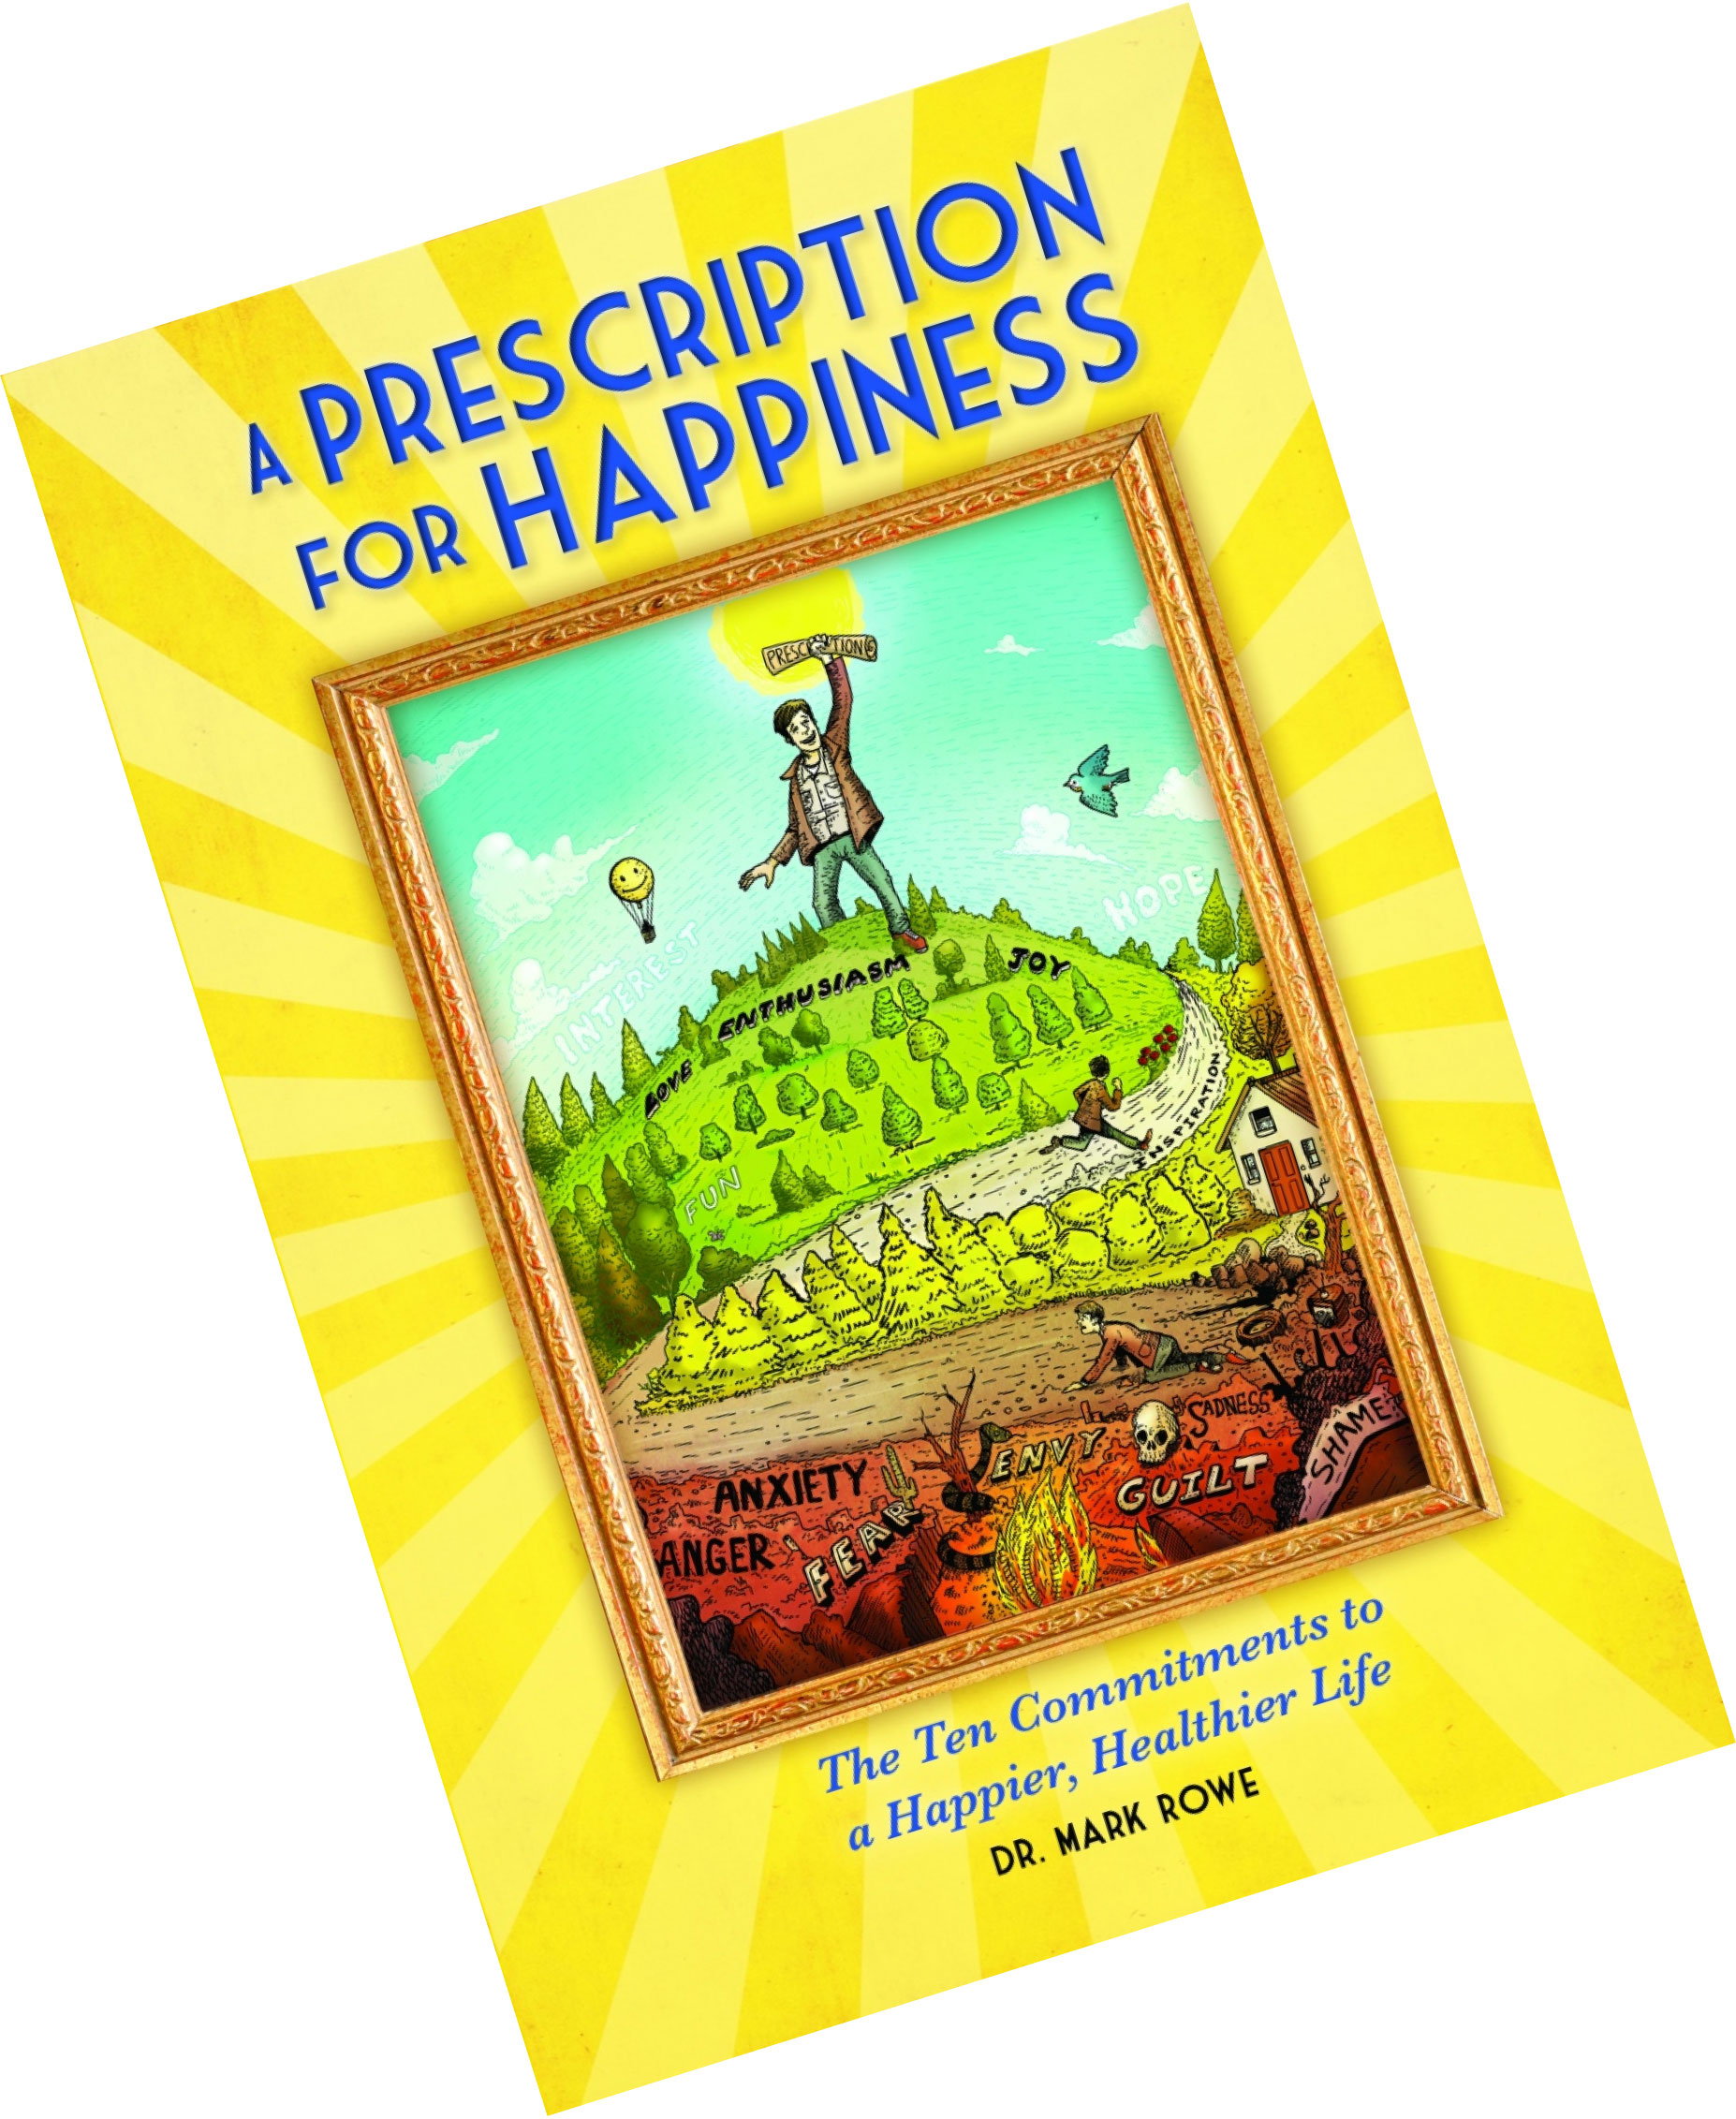 Dr. Mark Rowe - a Prescription for happiness